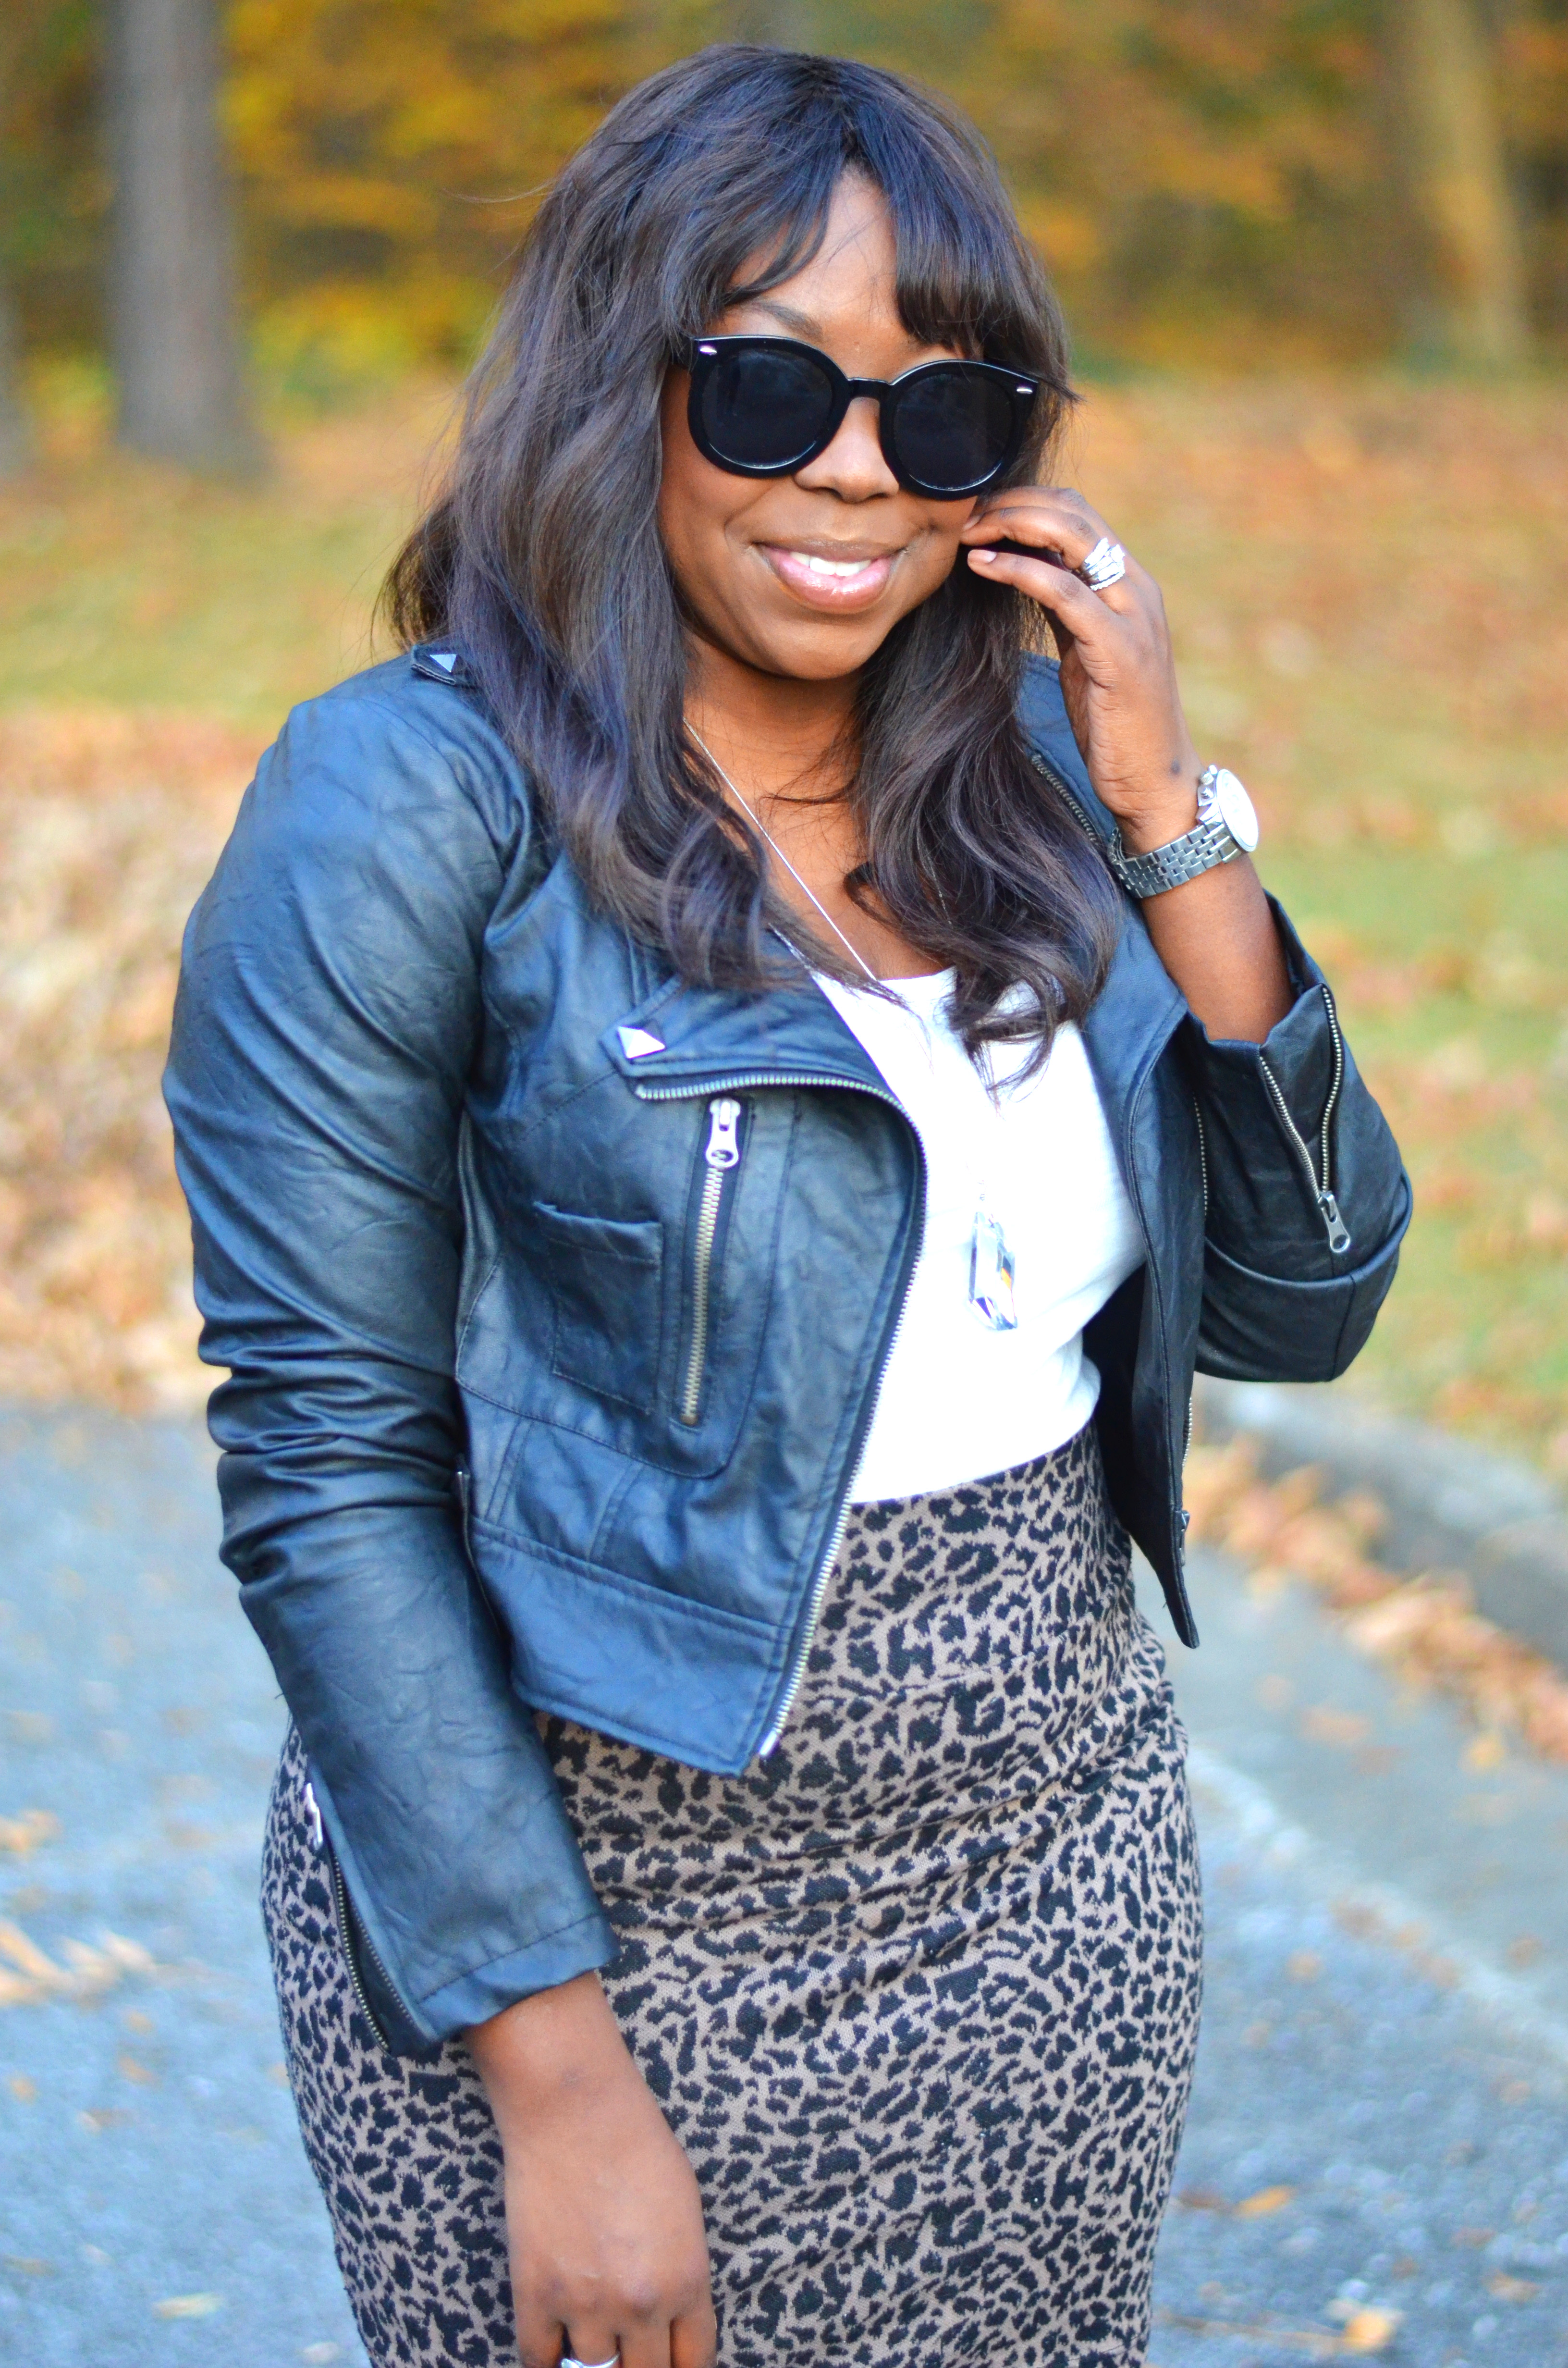 Leather and Leopard Skirt